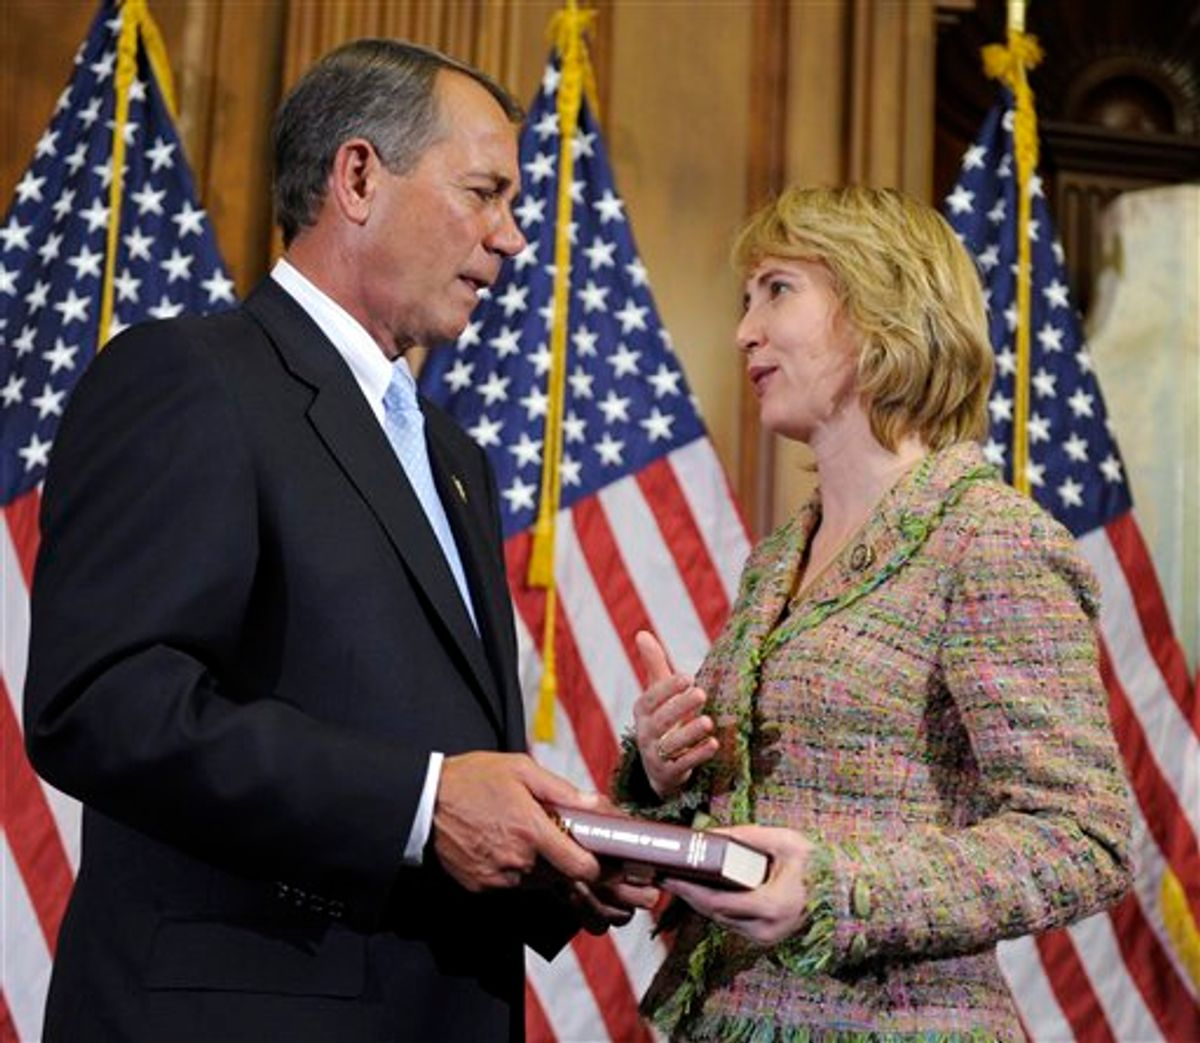 """FILE - In a Jan. 5, 2011 file photo, House Speaker John Boehner of Ohio reenacts the swearing in of Rep. Gabrielle Giffords, D-Ariz., on Capitol Hill in Washington. She loves motorcycles and yoga, and is as comfortable in a business suit walking the halls of Congress as she is clad in leather riding gear at the famed Sturgis Motorcycle Rally. She holds a master's degree in urban planning, yet can mount a tire in a flash. Pretty and petite, sometimes soft-spoken, she will take on even her most ardent   adversaries and try talking them down with a firm hand but also a smile. Said one friend of Gabrielle Giffords: """"She really pretty much defies a lot of description.""""  (AP Photo/Susan Walsh, File) (AP)"""